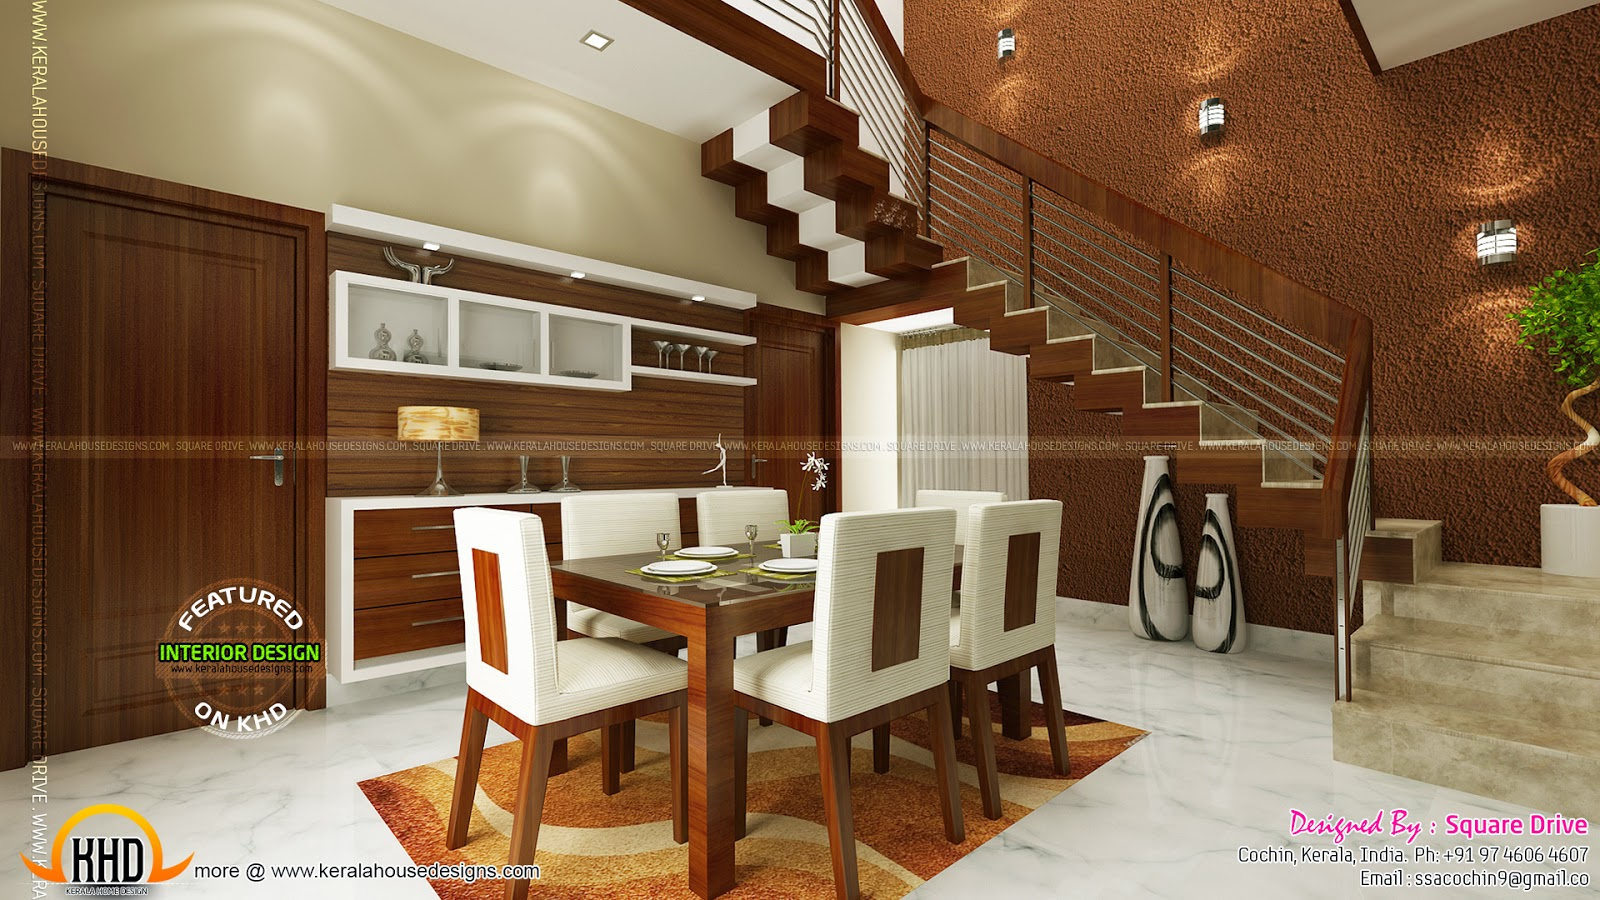 Cochin interior design kerala home design and floor plans for Internal house design